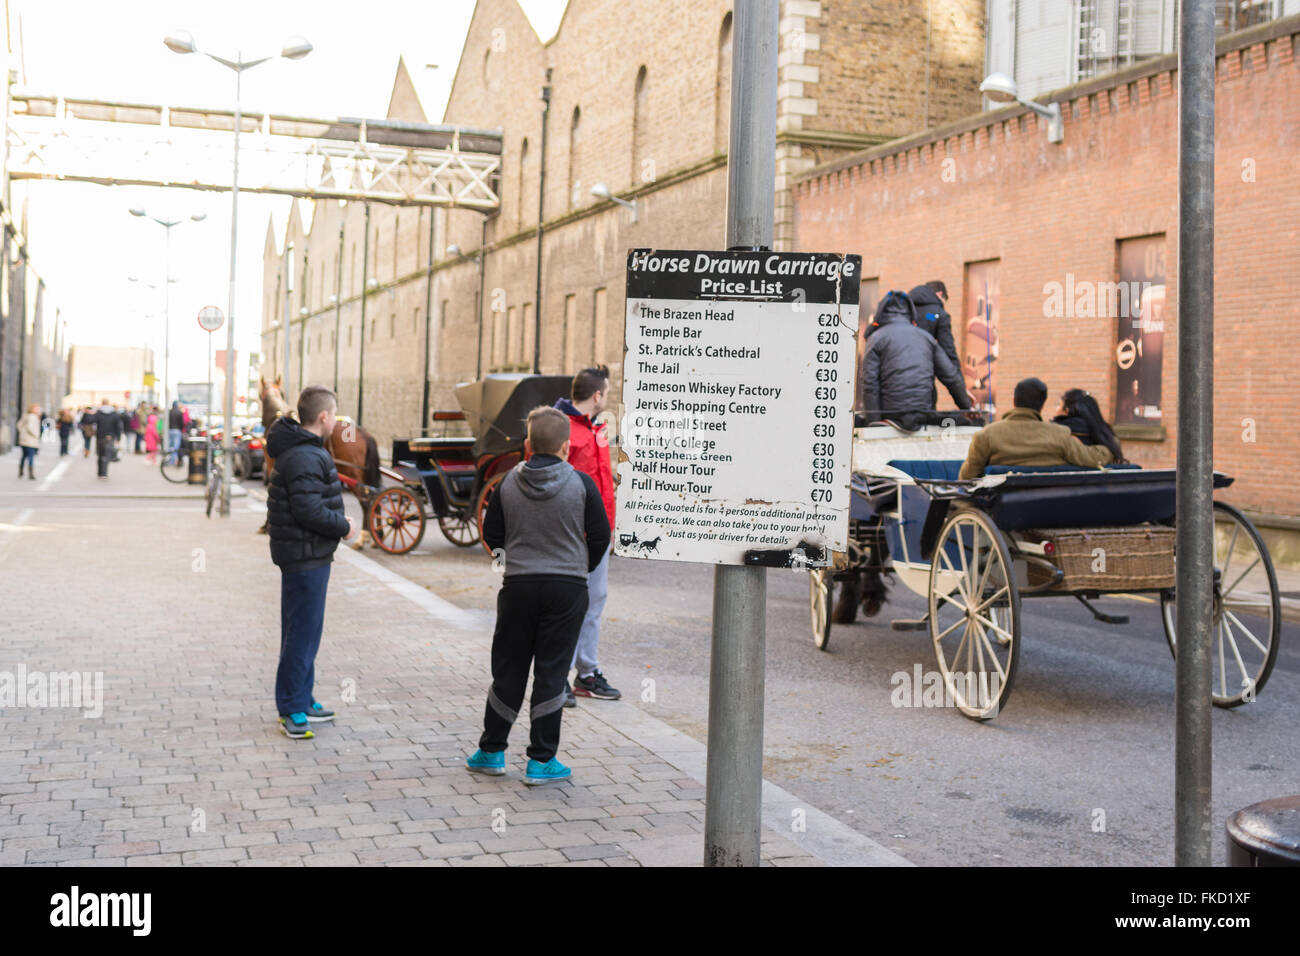 Horse drawn carriages picking up tourists outside the Guinness Storehouse, Dublin, Ireland - Stock Image